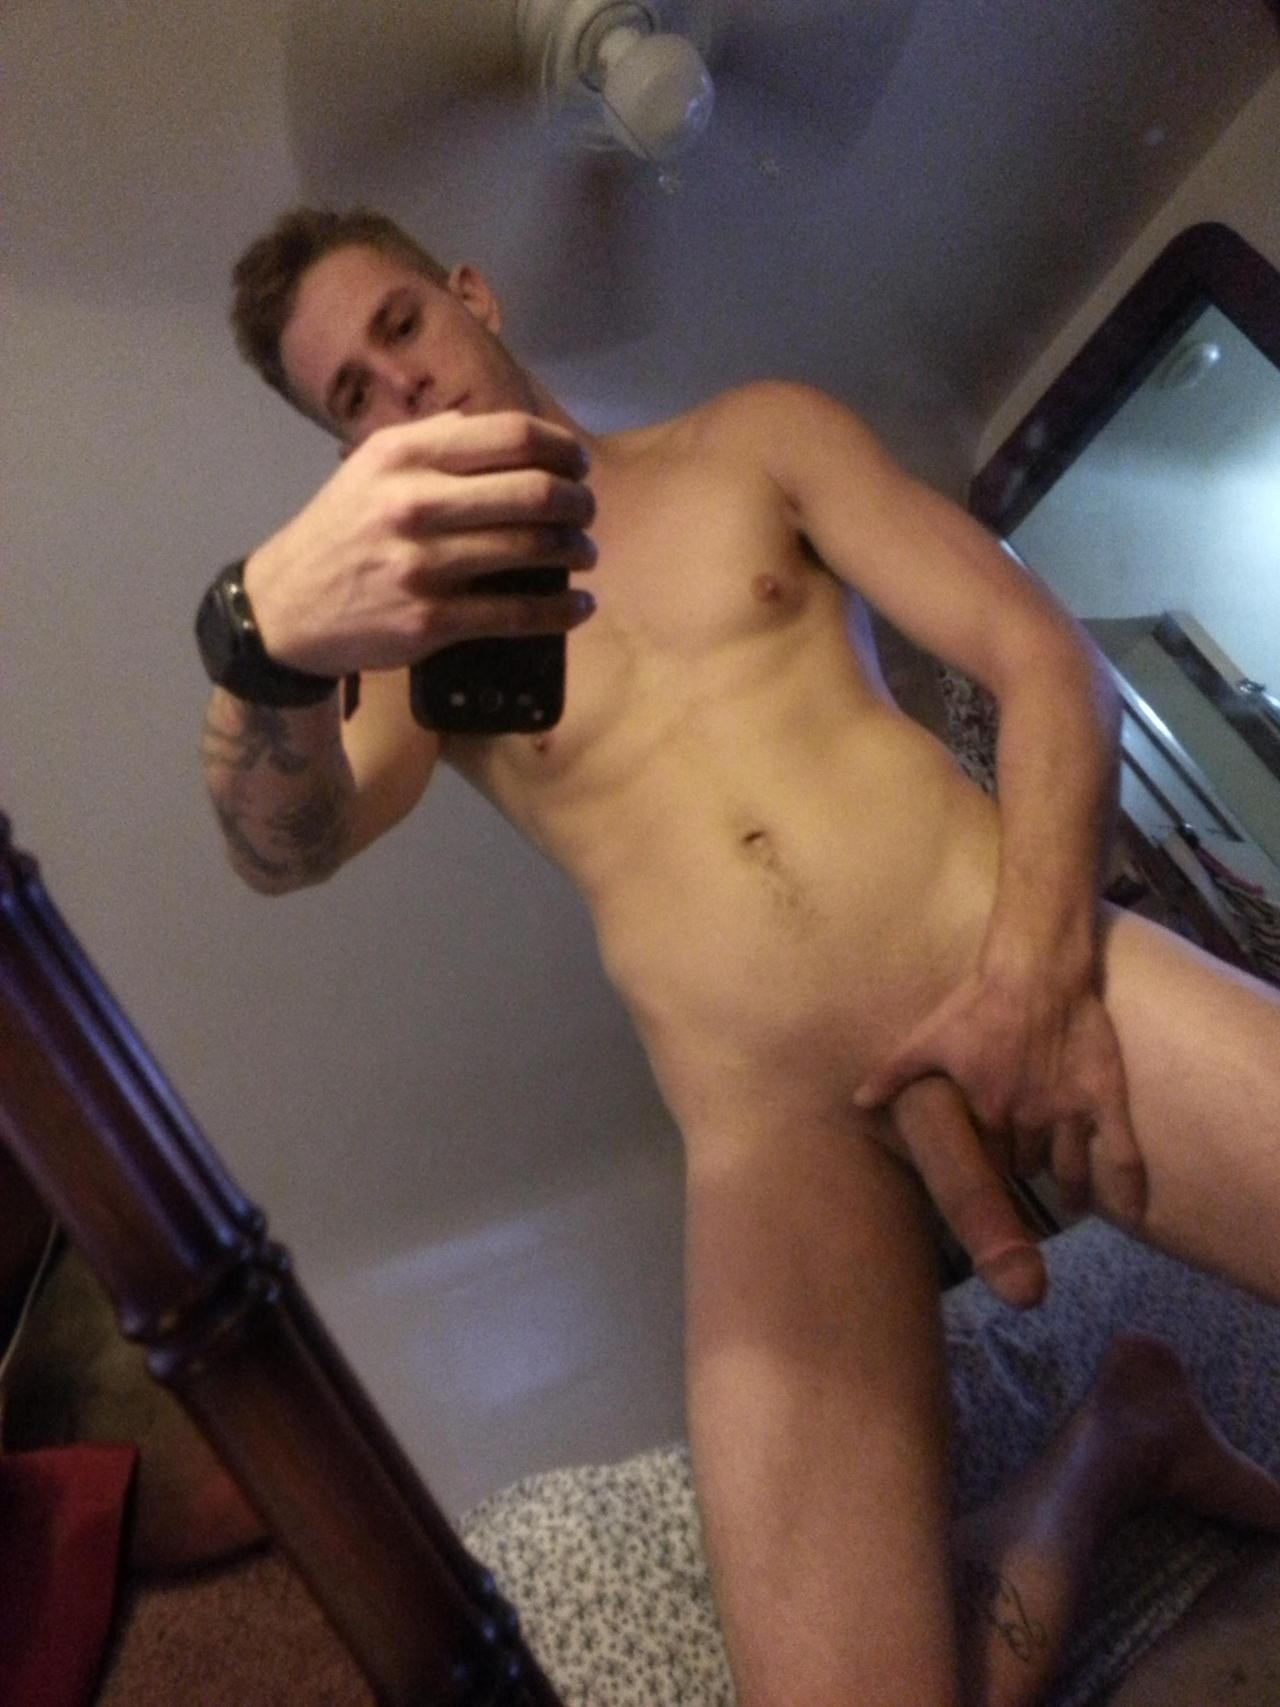 Nude gay boy with a really long cock